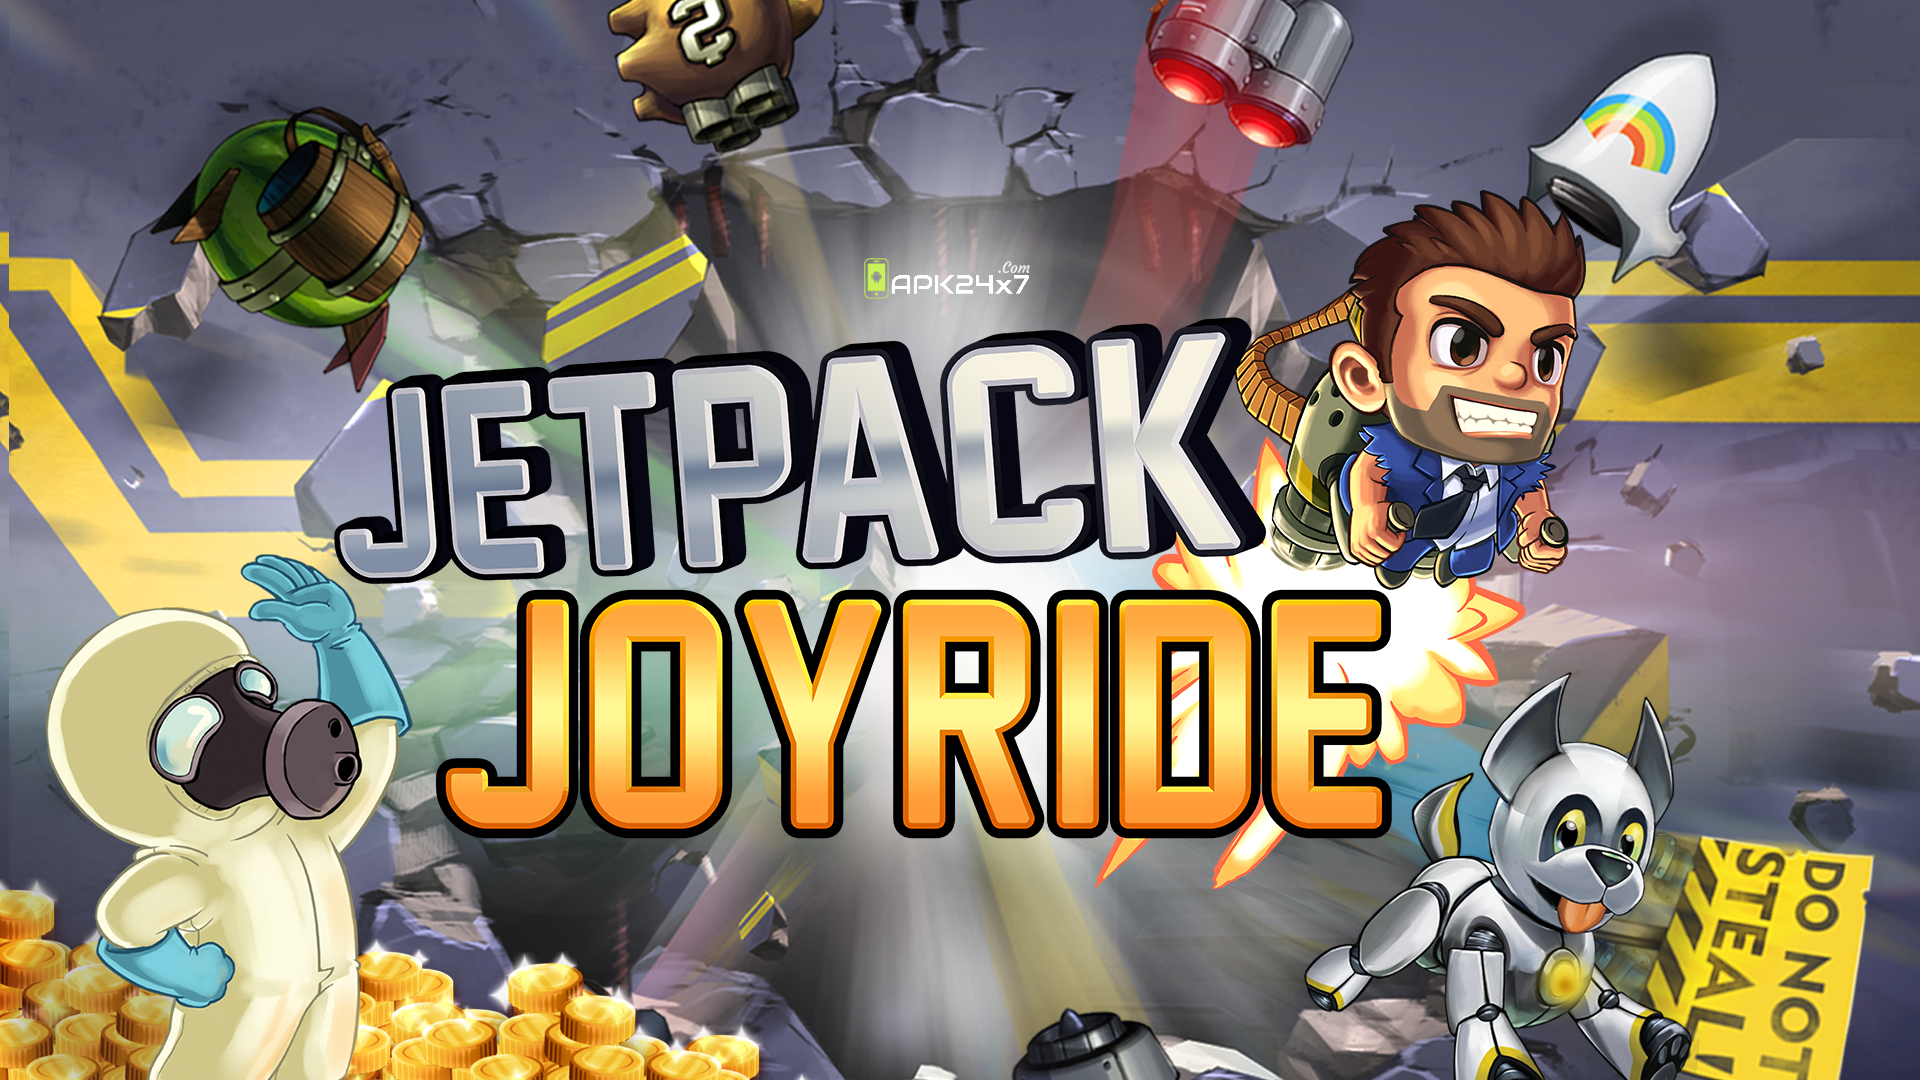 Jetpack Joyride Mod APK (Unlimited Coins) Download For